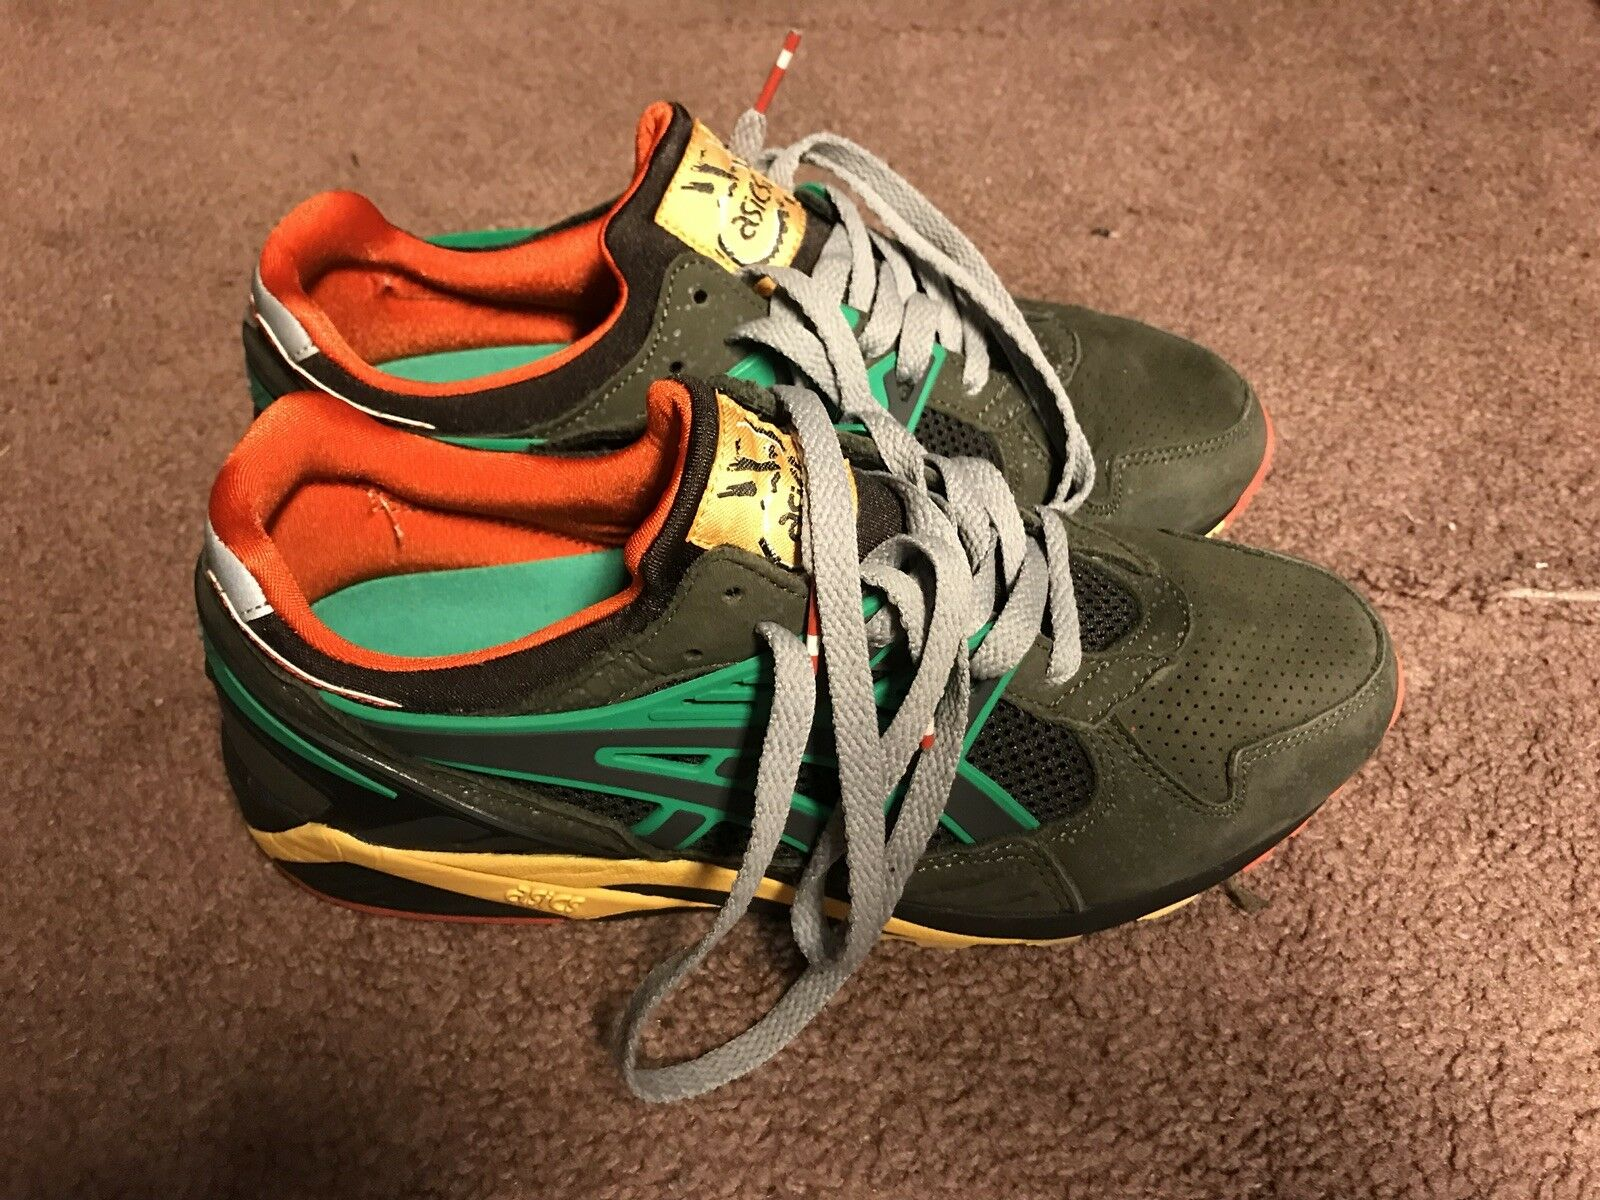 """Asics Gel Kayano x Packer shoes """"All Roads Lead To Teaneck"""" H44KK-9191 Size 8"""